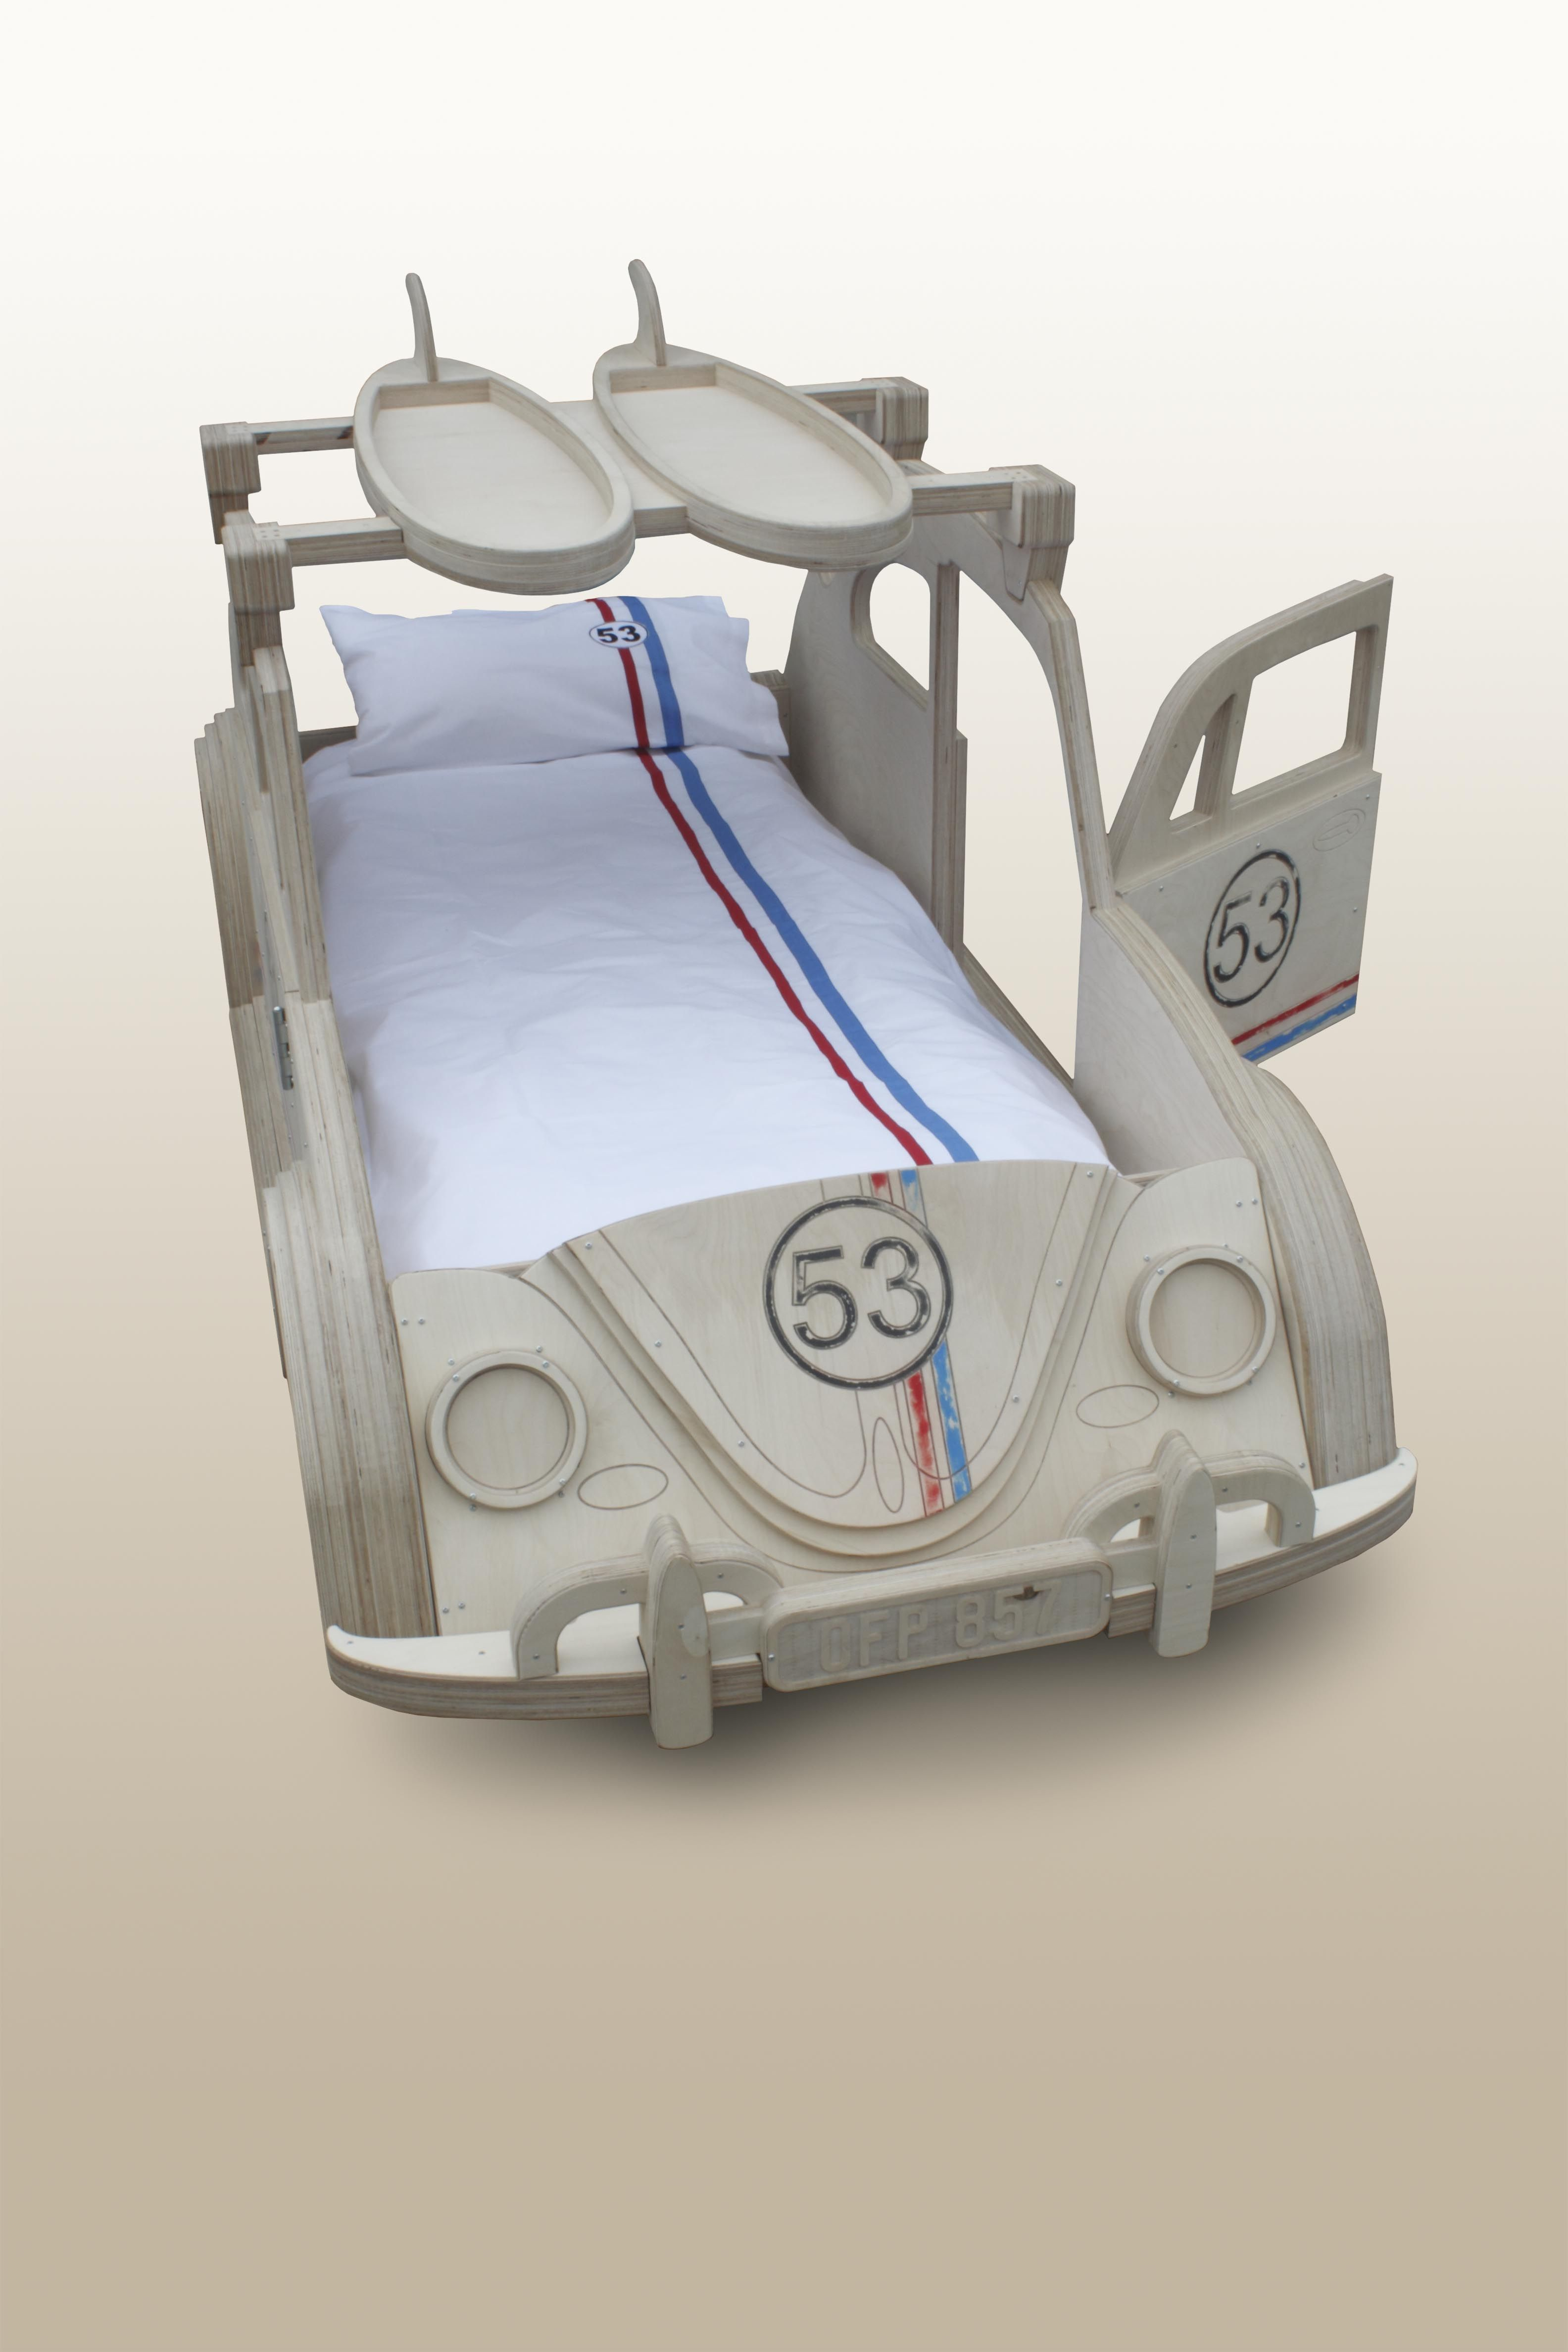 Funky Furniture Ottawa Vw Beetle Quotherbie Quot Bed By Fun Furniture Collection With 53